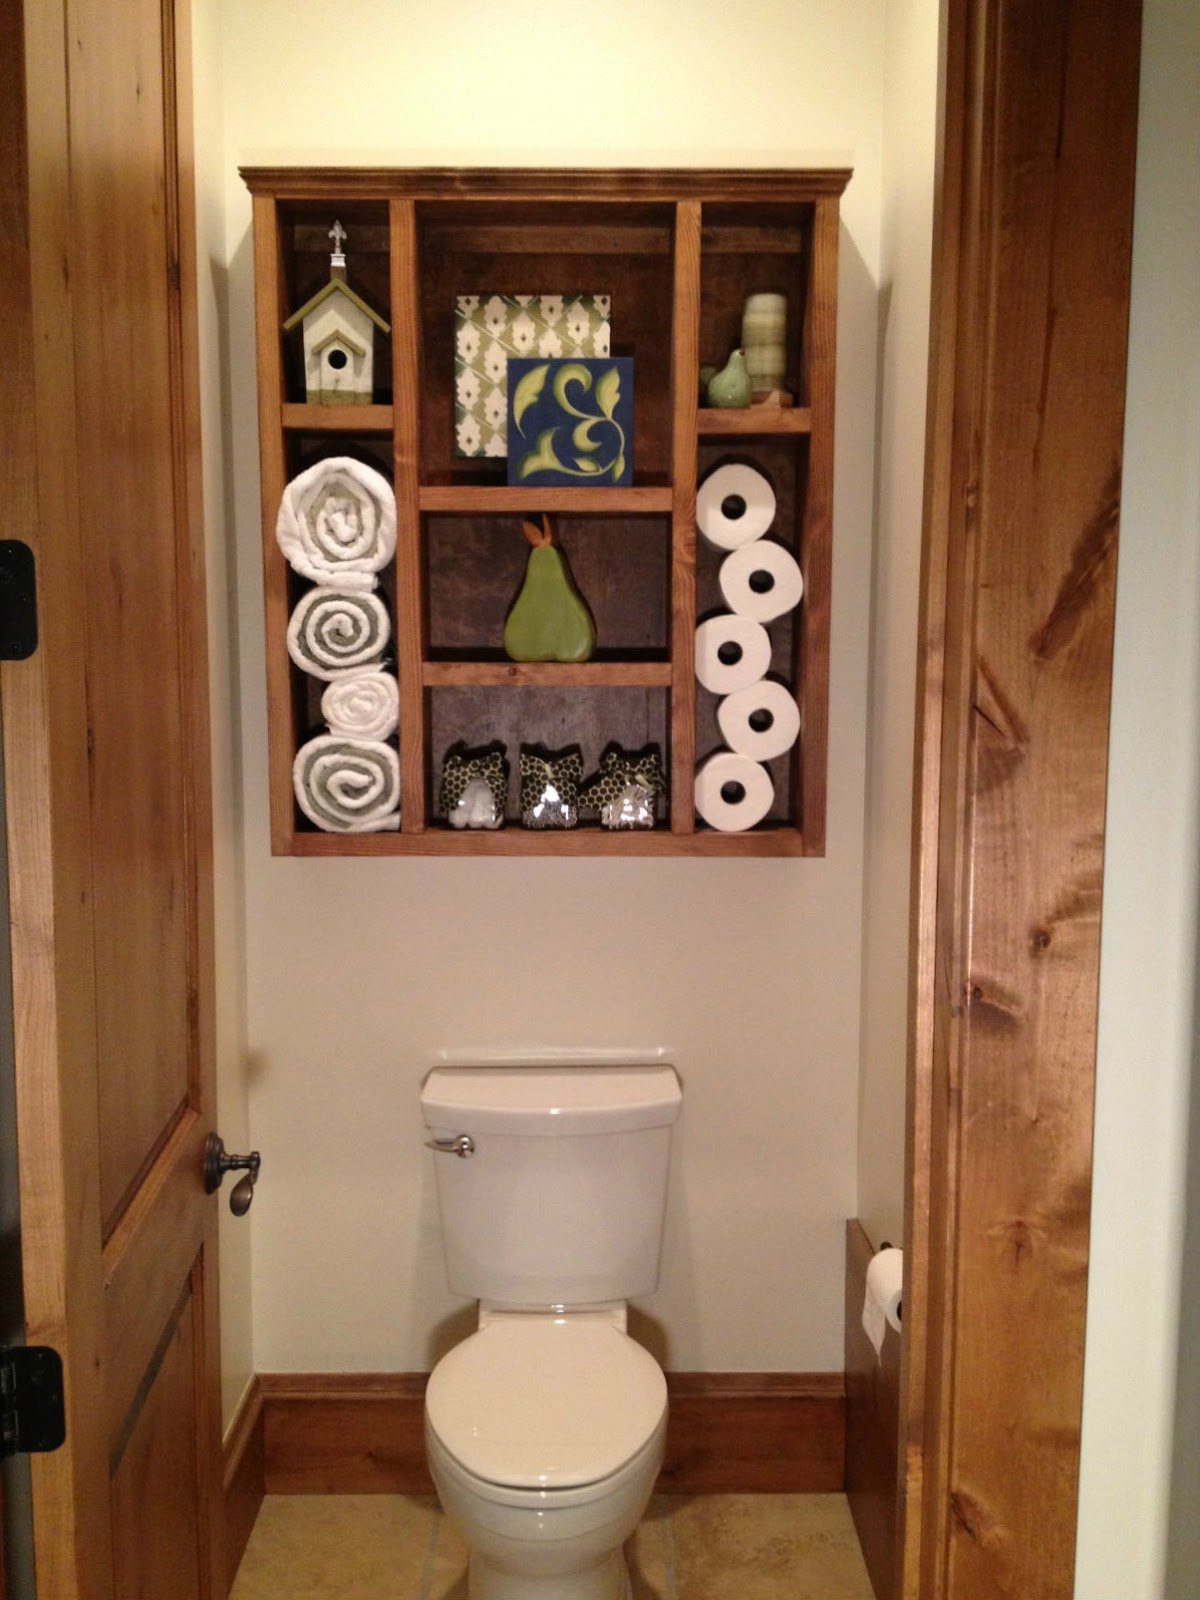 Dad Built This: Bathroom Shelf